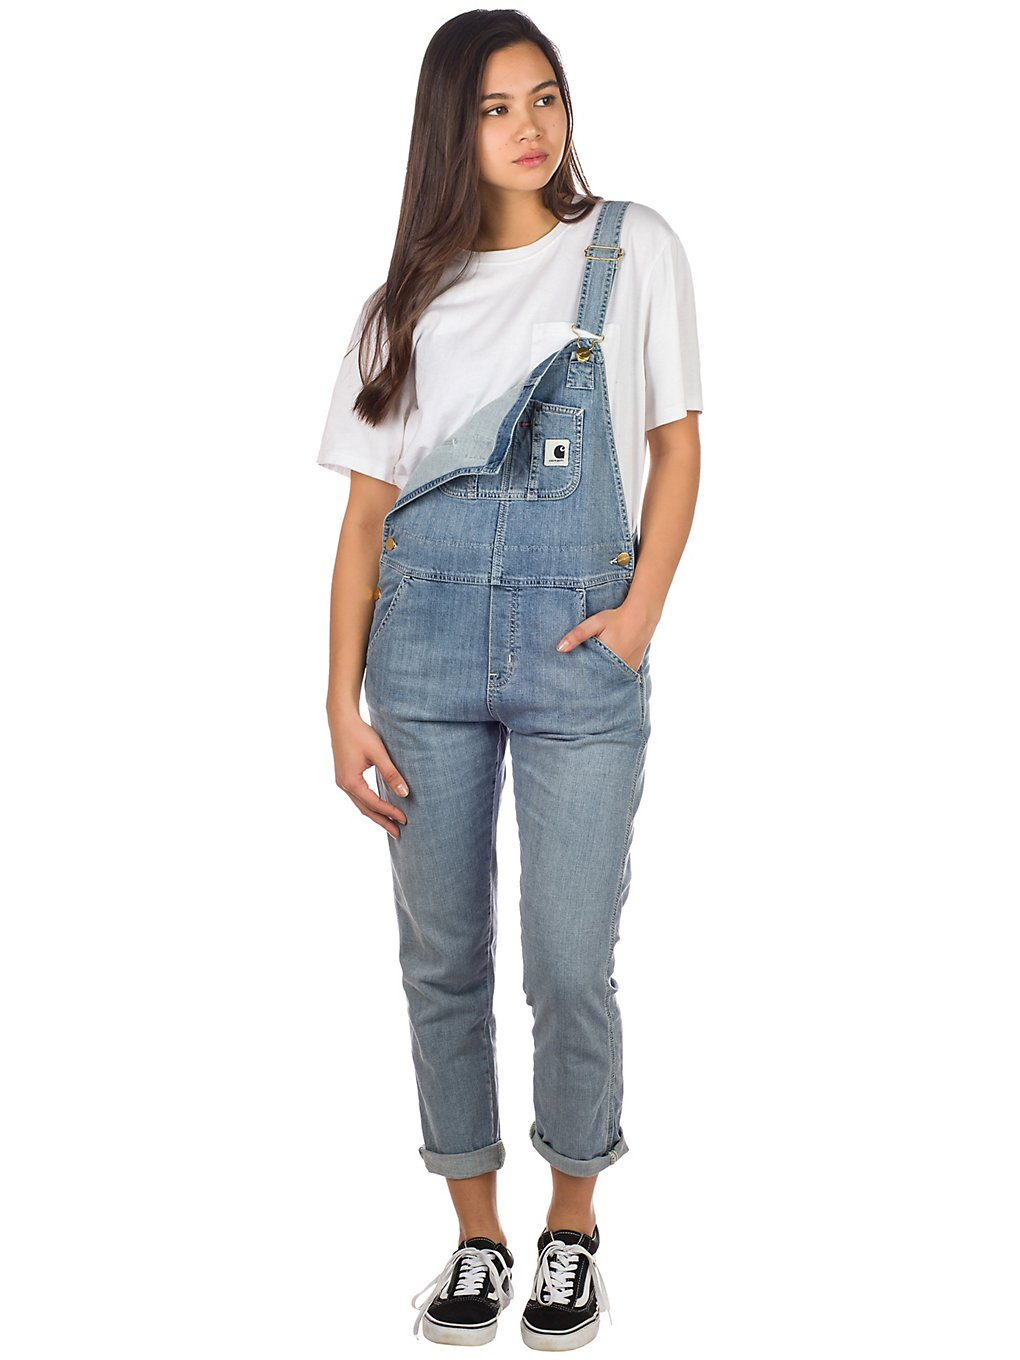 Hosen - Carhartt WIP Bib Overall Dungarees blue light stone washed  - Onlineshop Blue Tomato